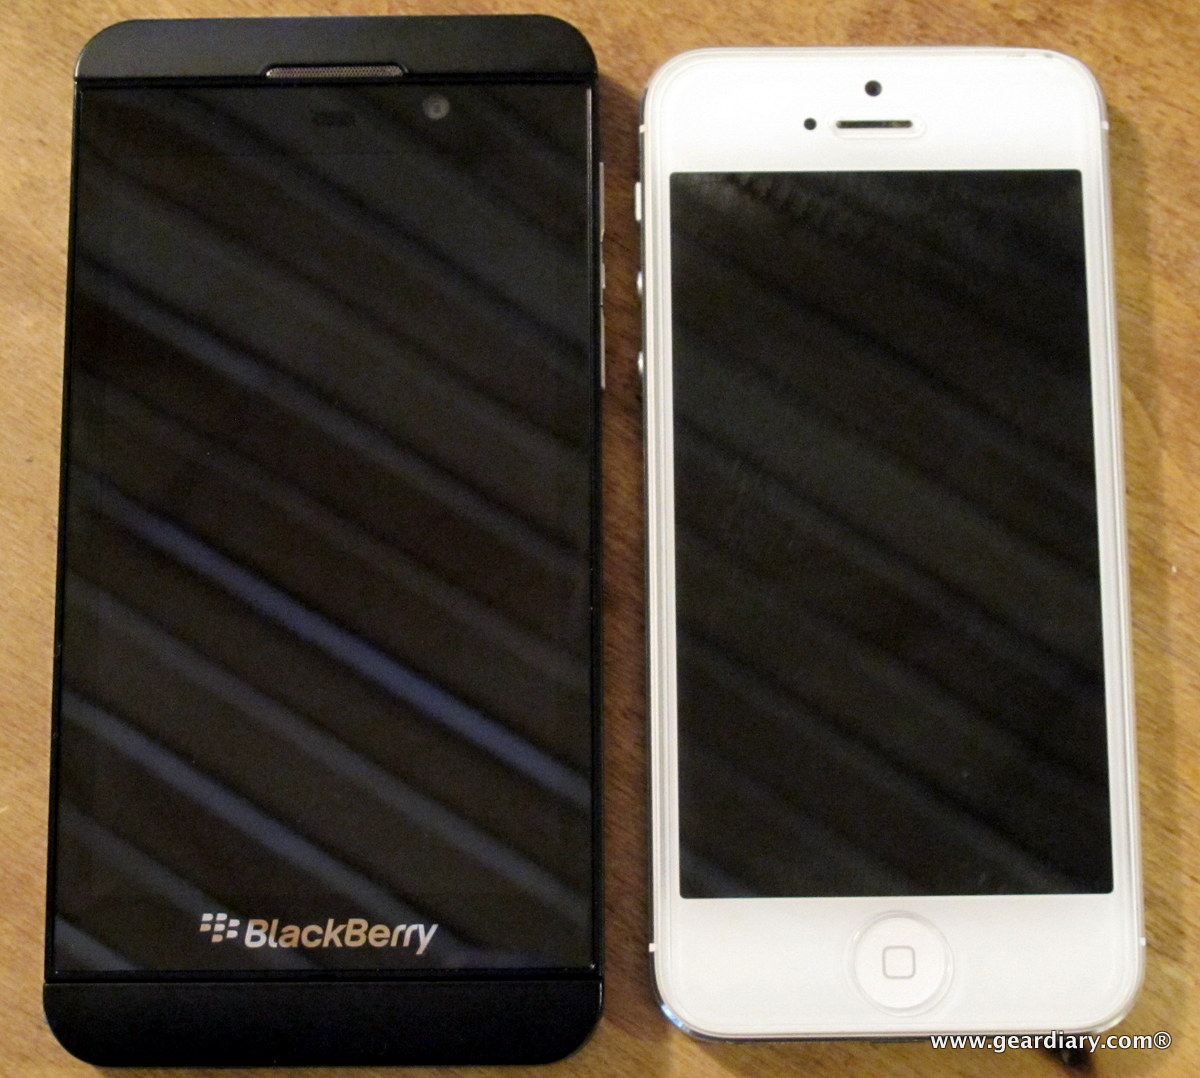 BlackBerry Z10 Review – Too Little Too Late? Or the Long Overdue